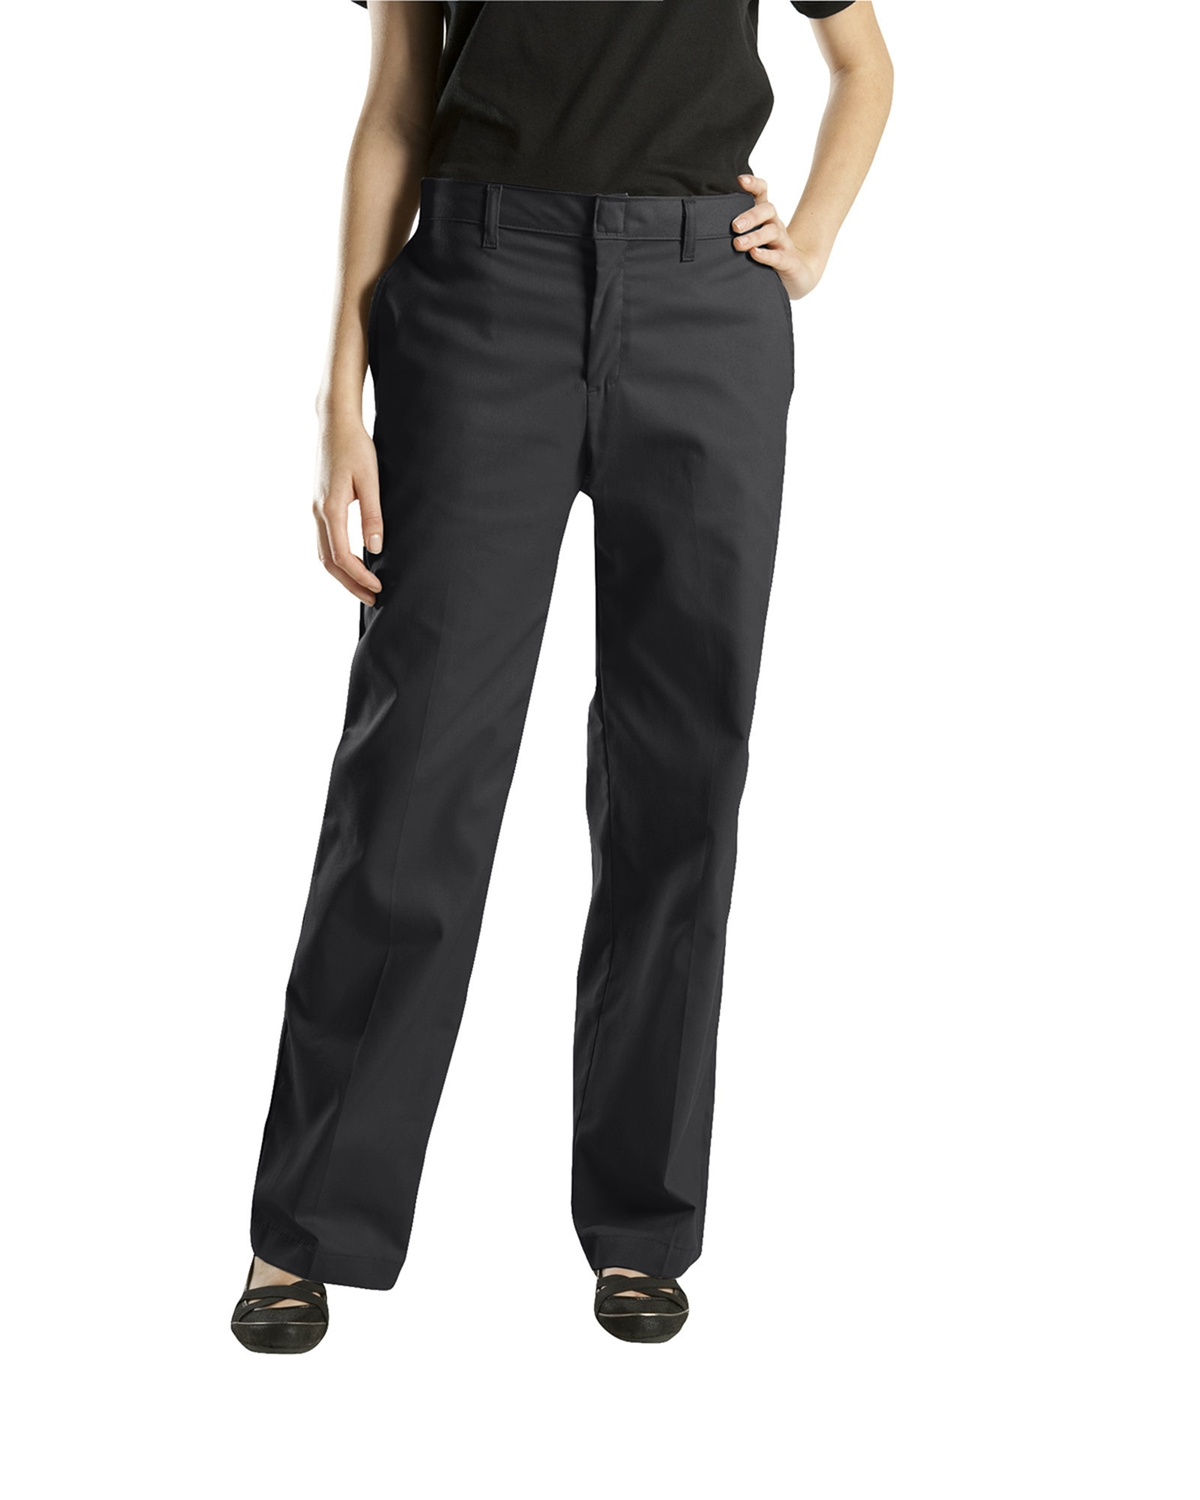 Dickies Drop Ship - FP221  Women's Premium Flat Front Pant